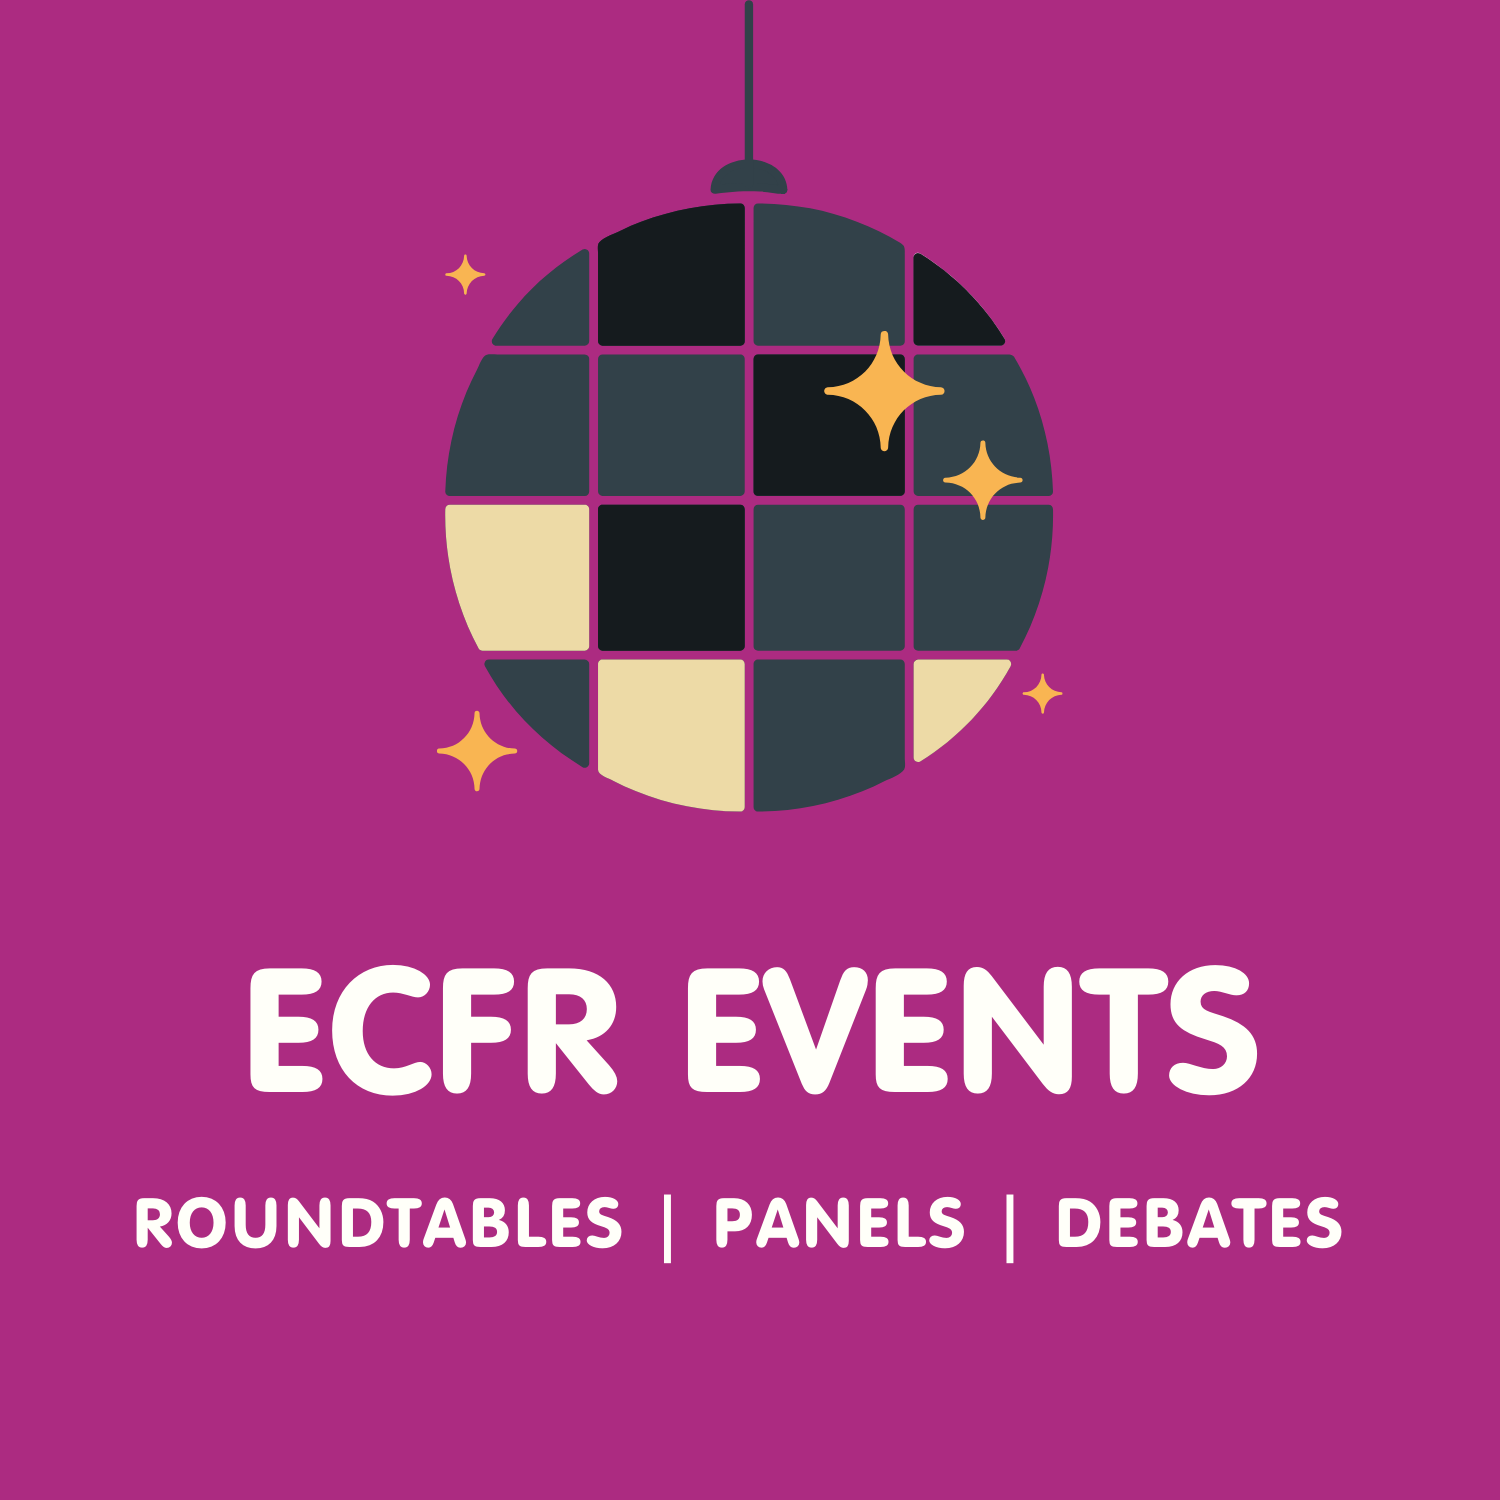 ECFR events' podcast cover